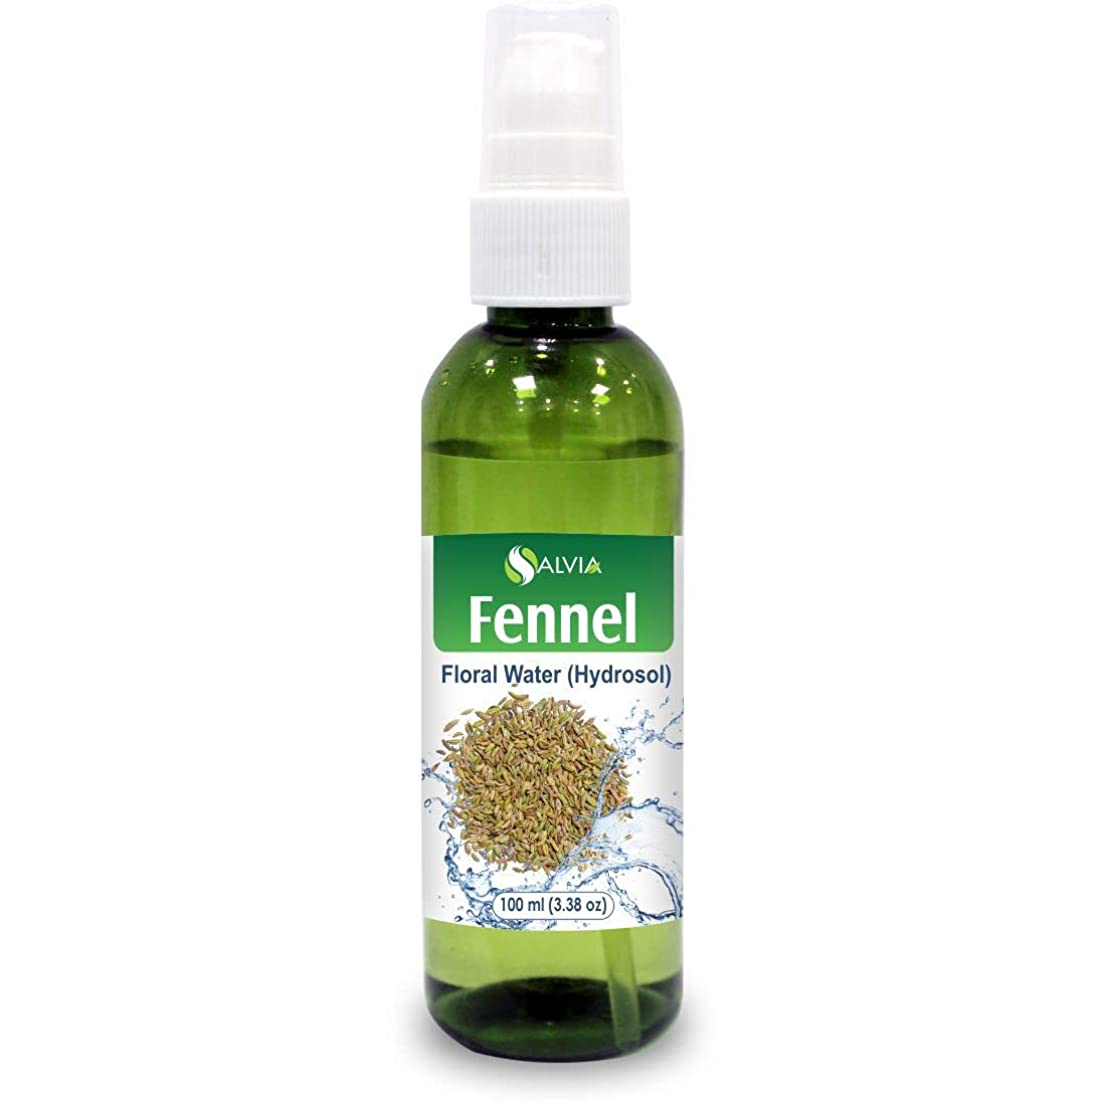 週末クラシカルマガジンFennel Floral Water 100ml (Hydrosol) 100% Pure And Natural